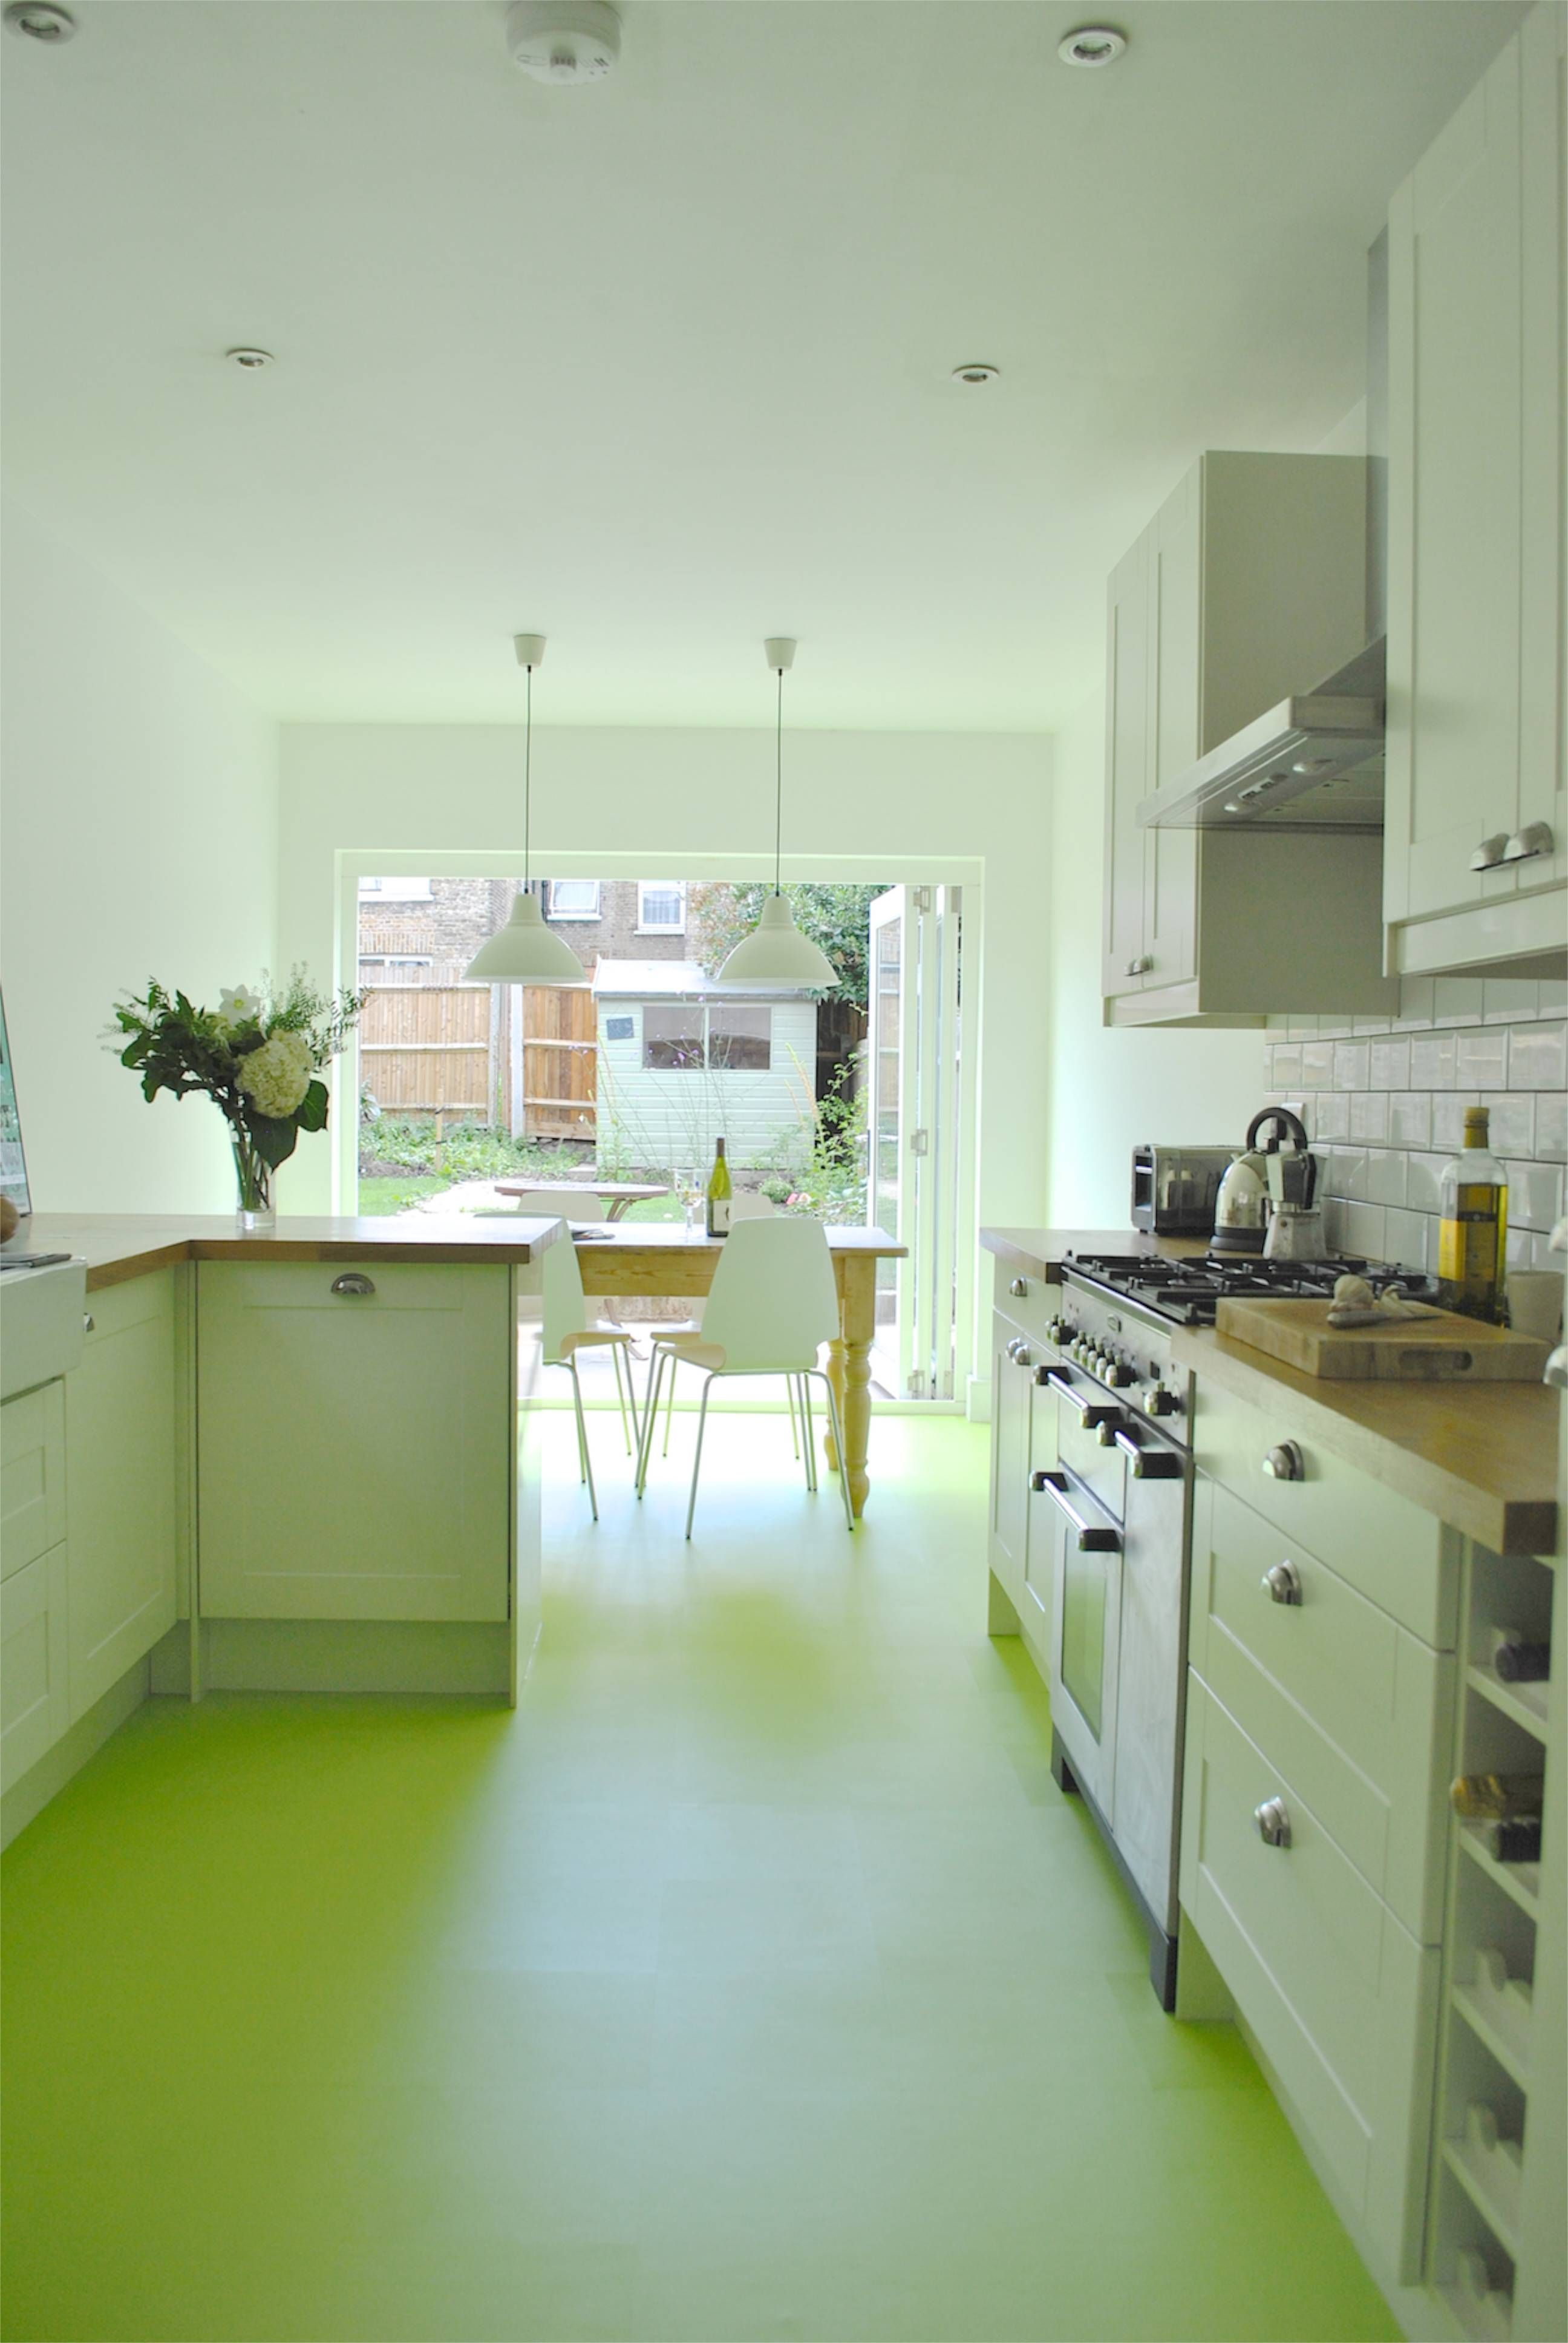 Green kitchen design with tan wooden countertop and white